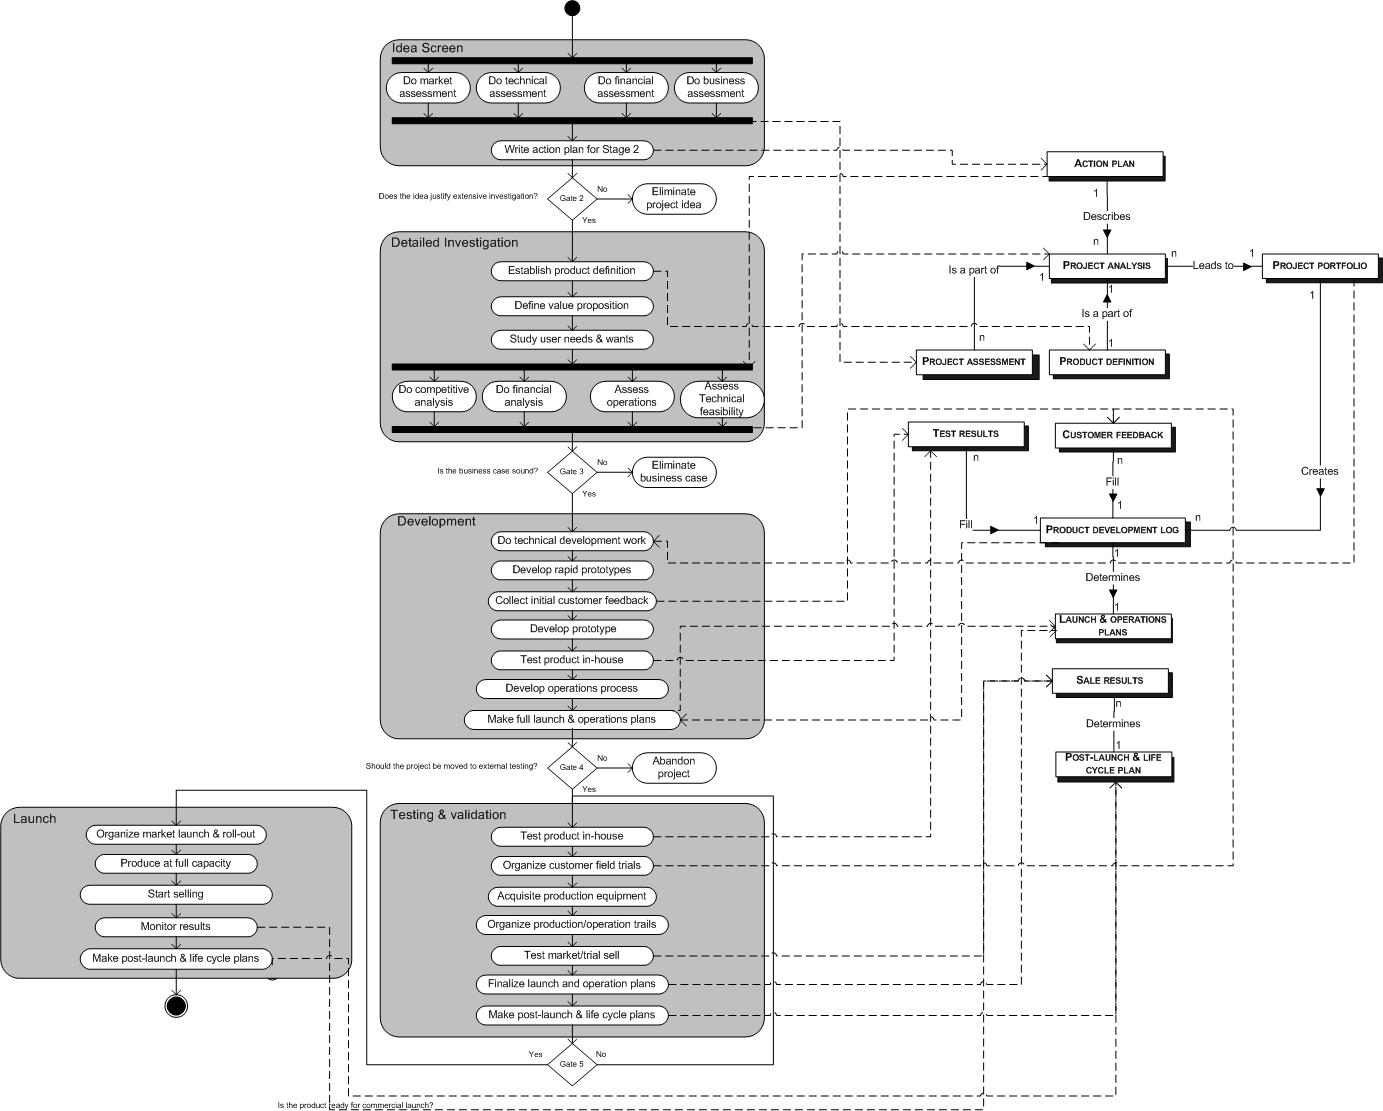 Project Planning Flow Chart: Stage gate process process data model.jpg - Wikimedia Commons,Chart